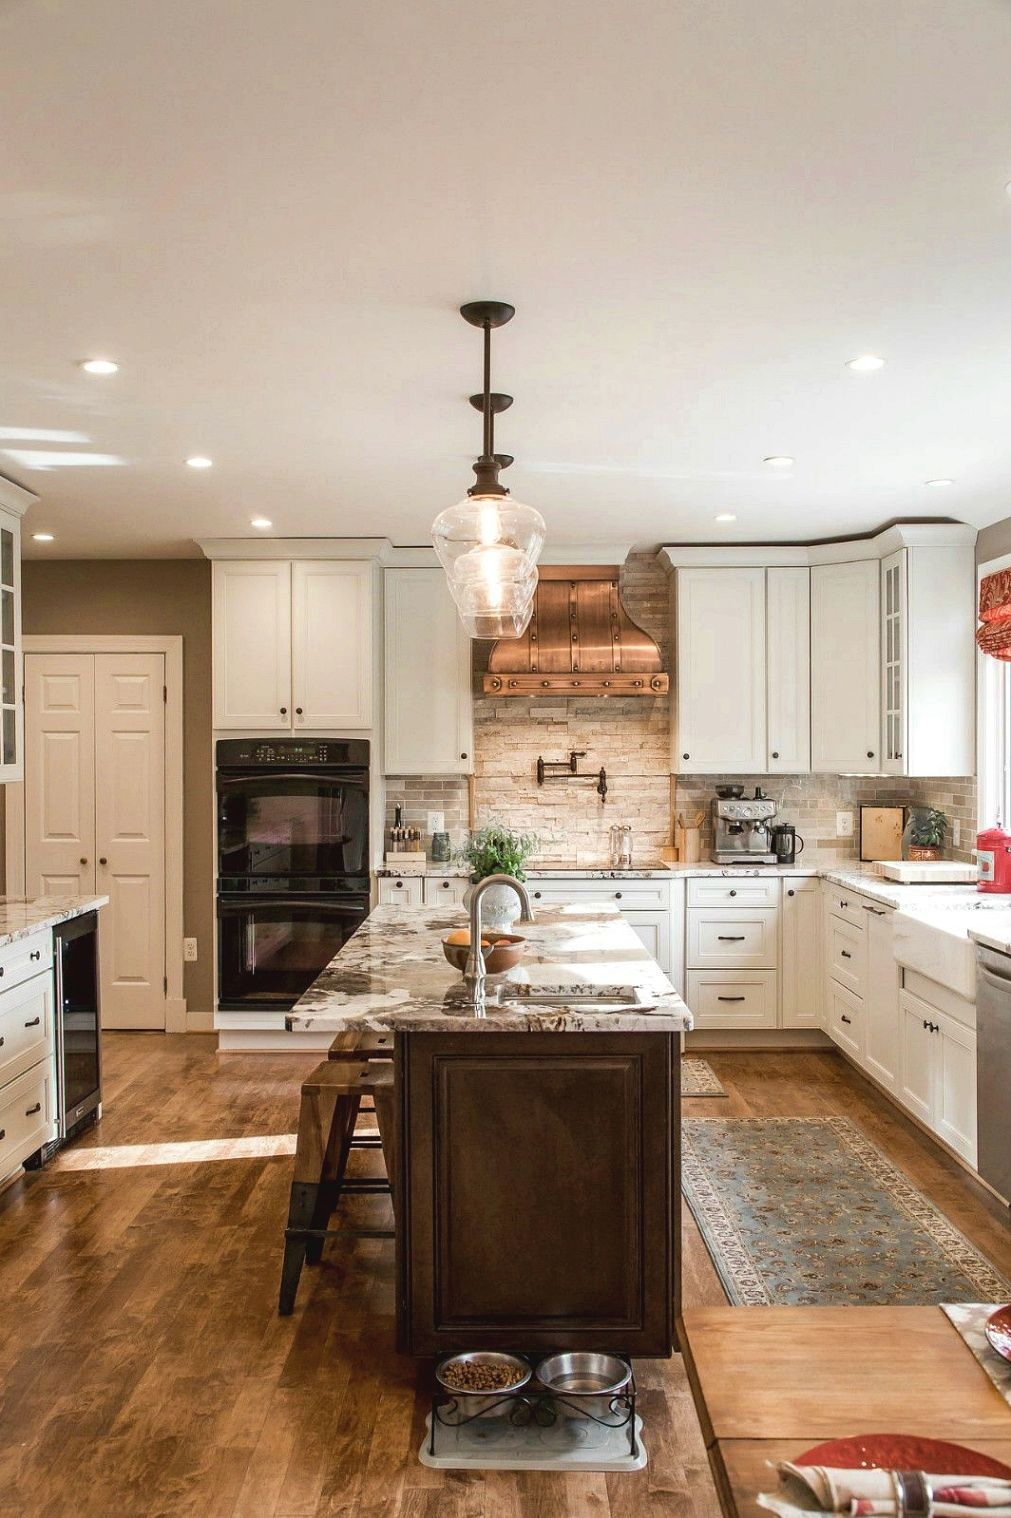 kitchen remodel info a fun approach to liven up rooms on a